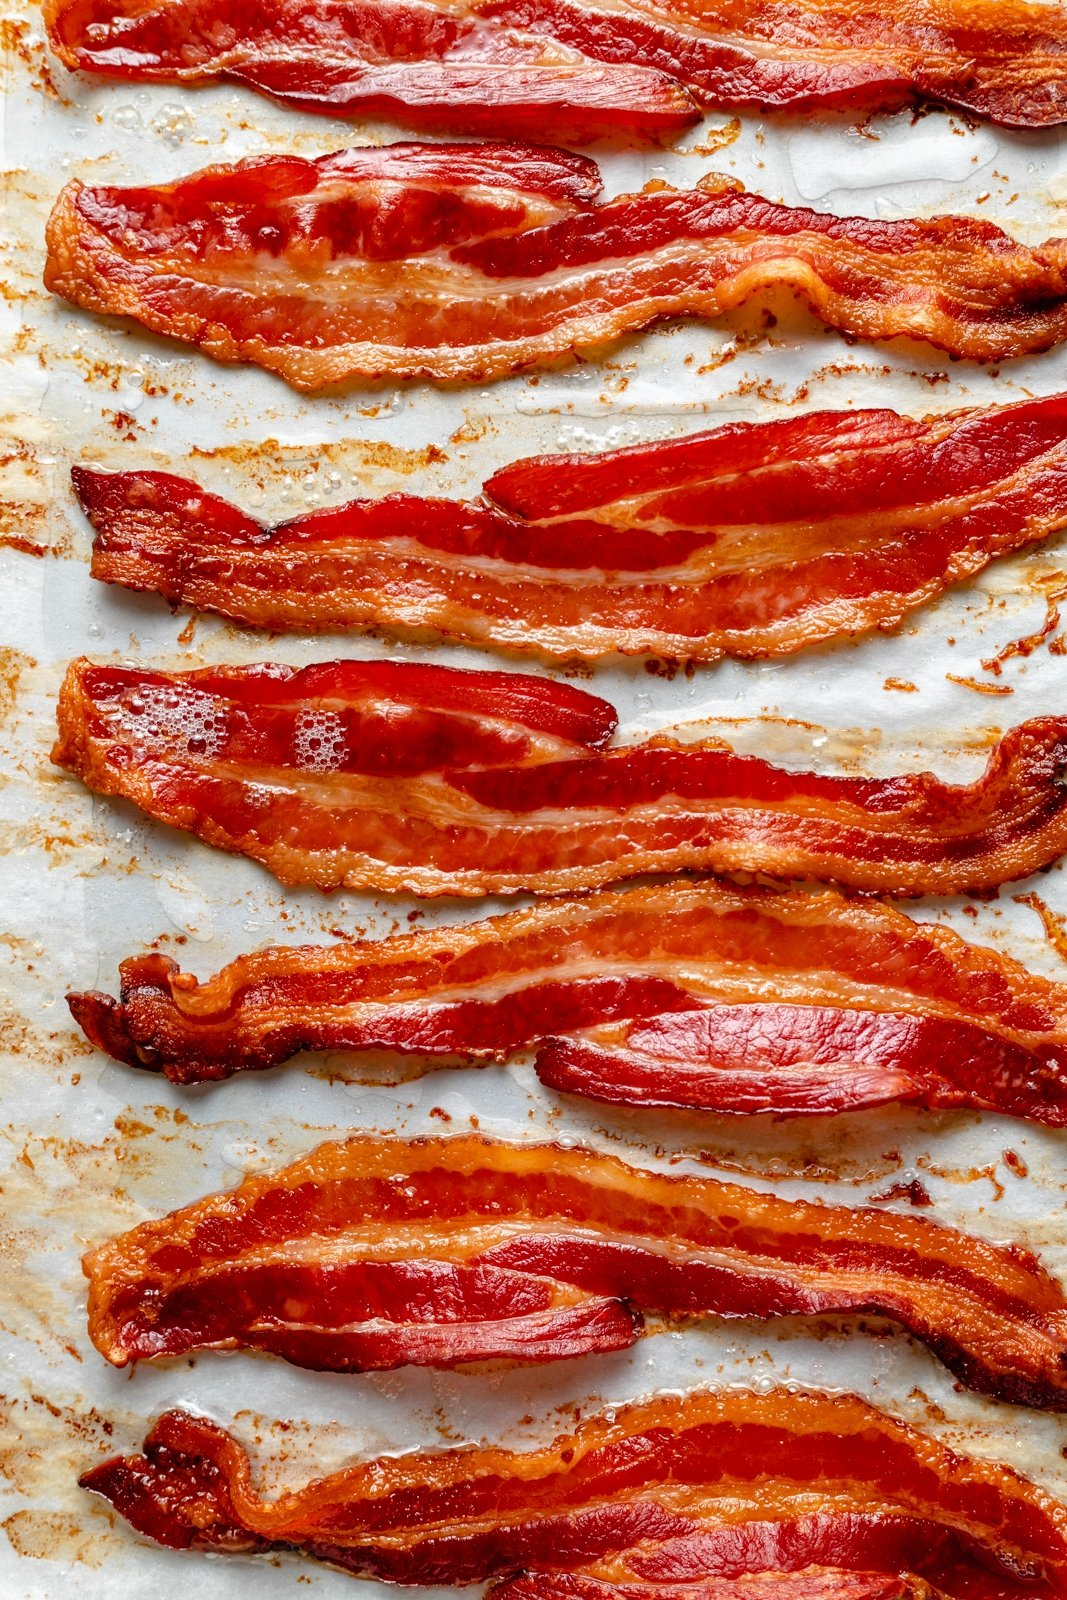 bacon slices that were cooked in the oven